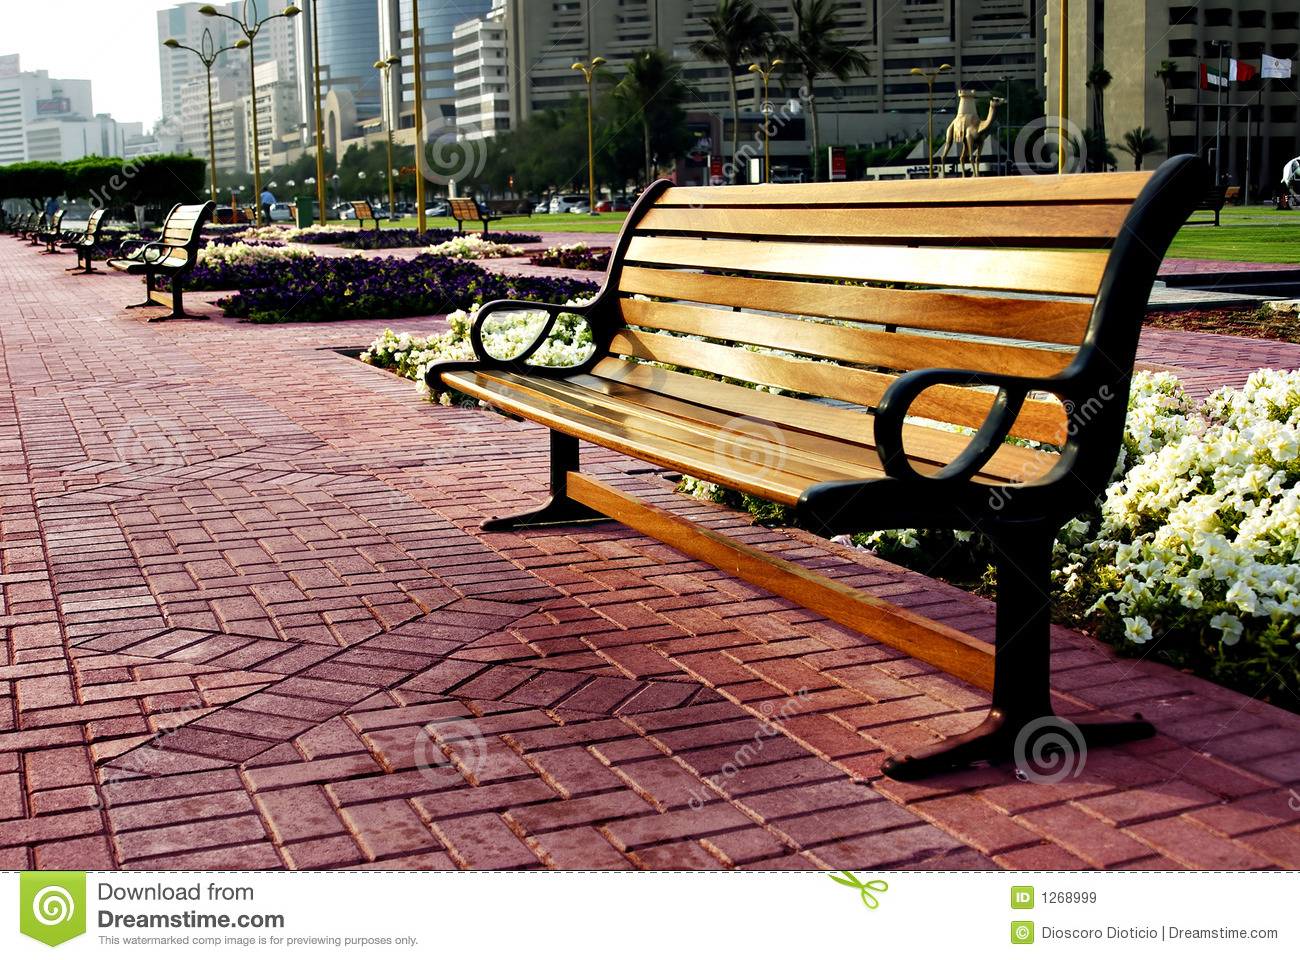 City Park Bench Royalty Free Stock Images - Image: 1268999